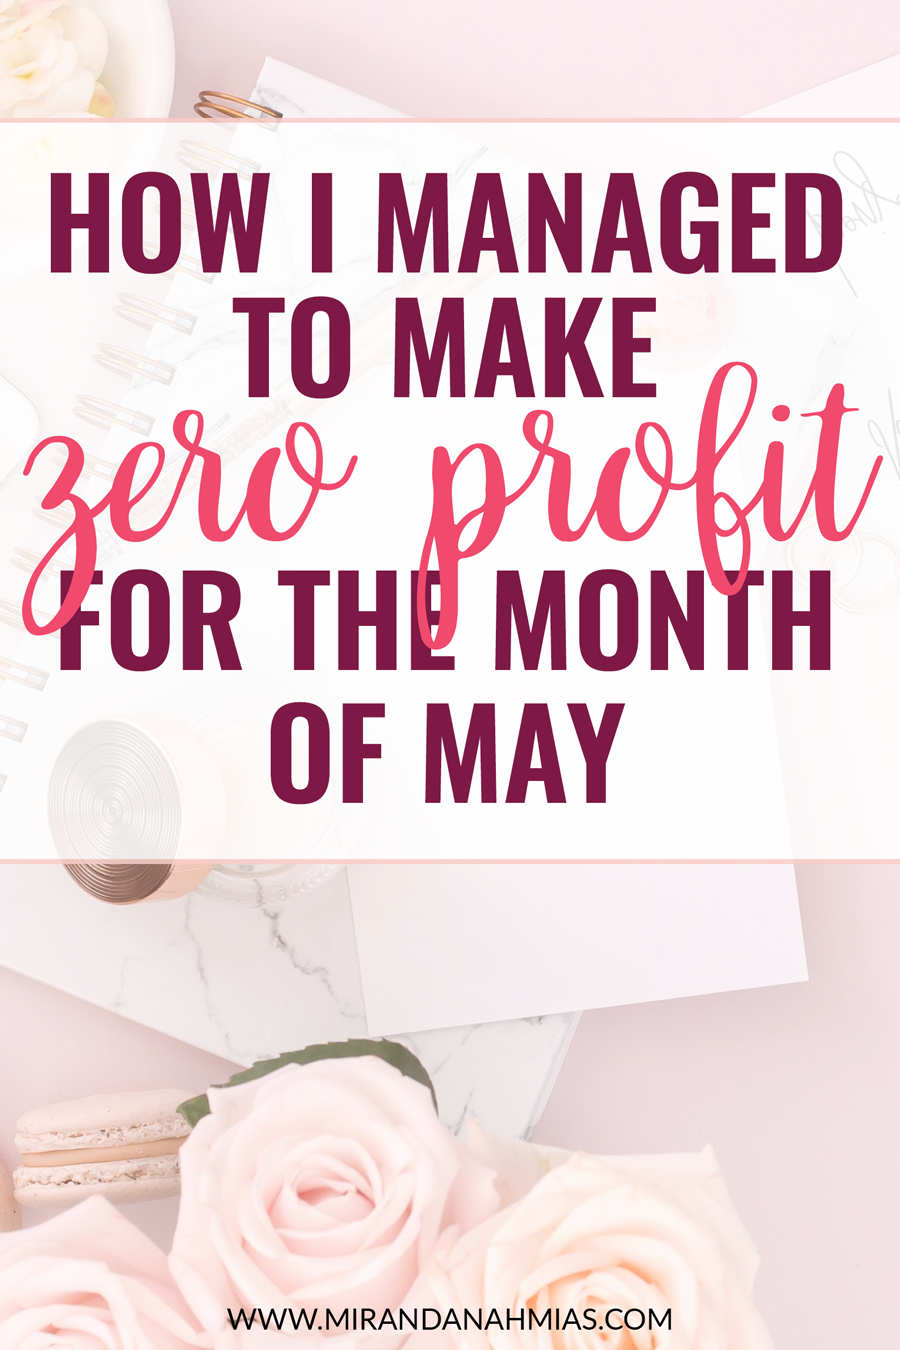 How I Managed to Make Zero Profit for the Month of May. My May 2017 income report // Miranda Nahmias & Co. Digital Marketing and Virtual Assistance